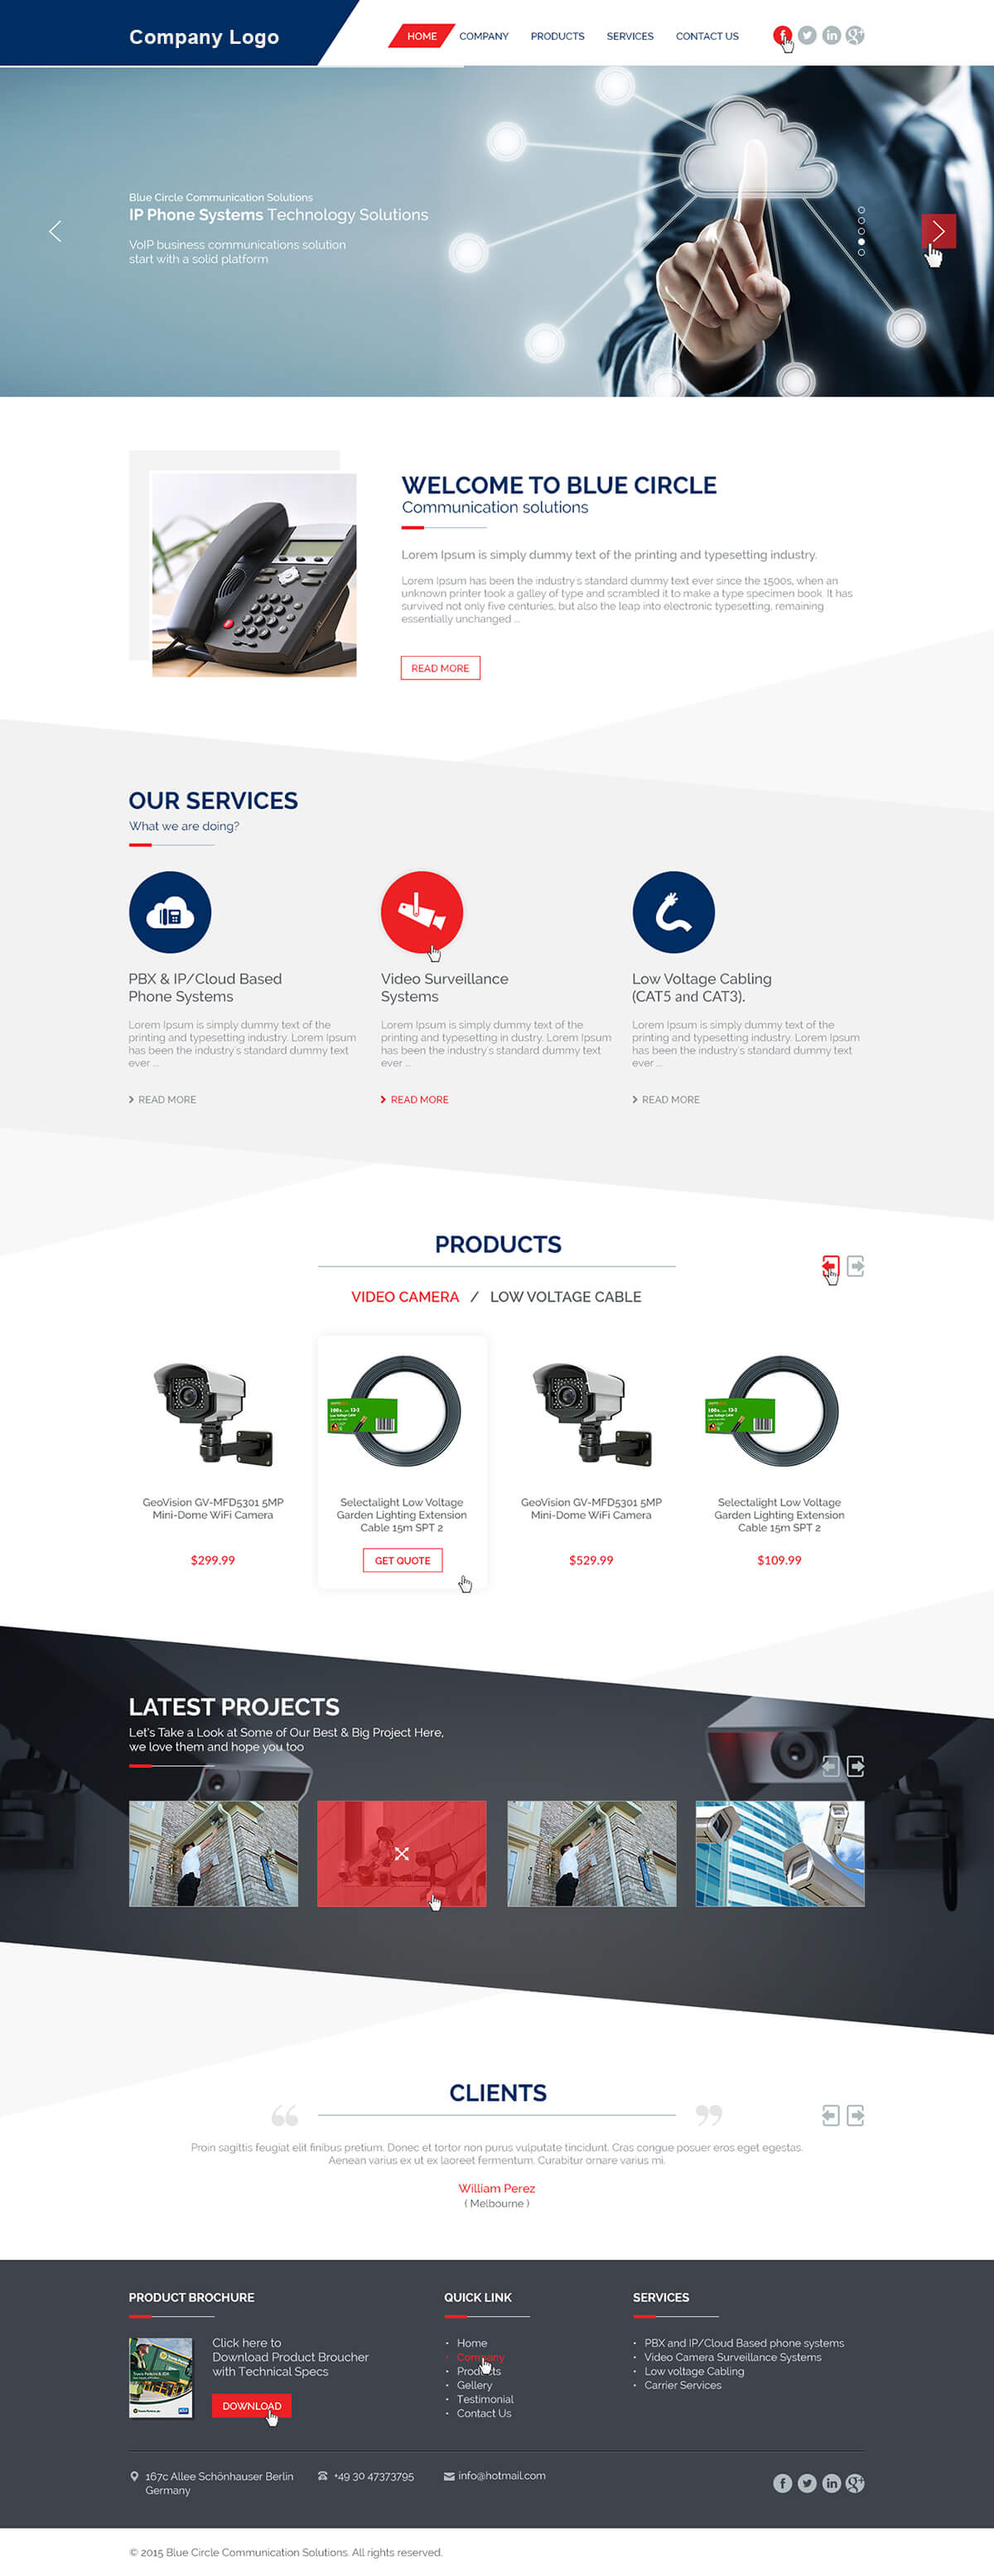 Small business website template ved web services small business website template accmission